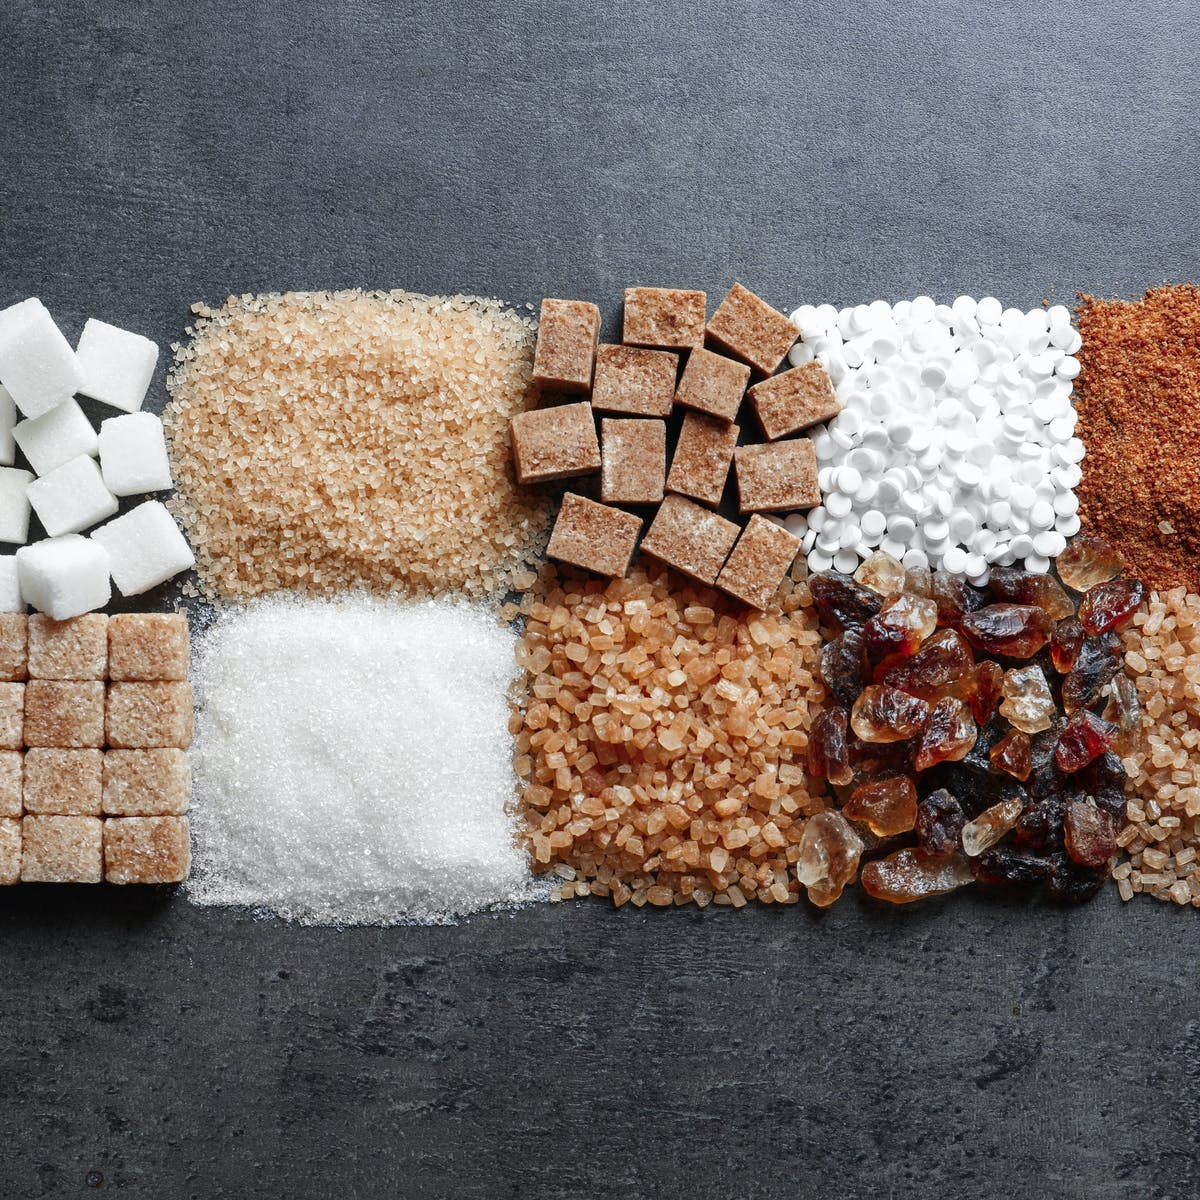 Sugar substitutes: Is one better or worse for diabetes? For weight ...